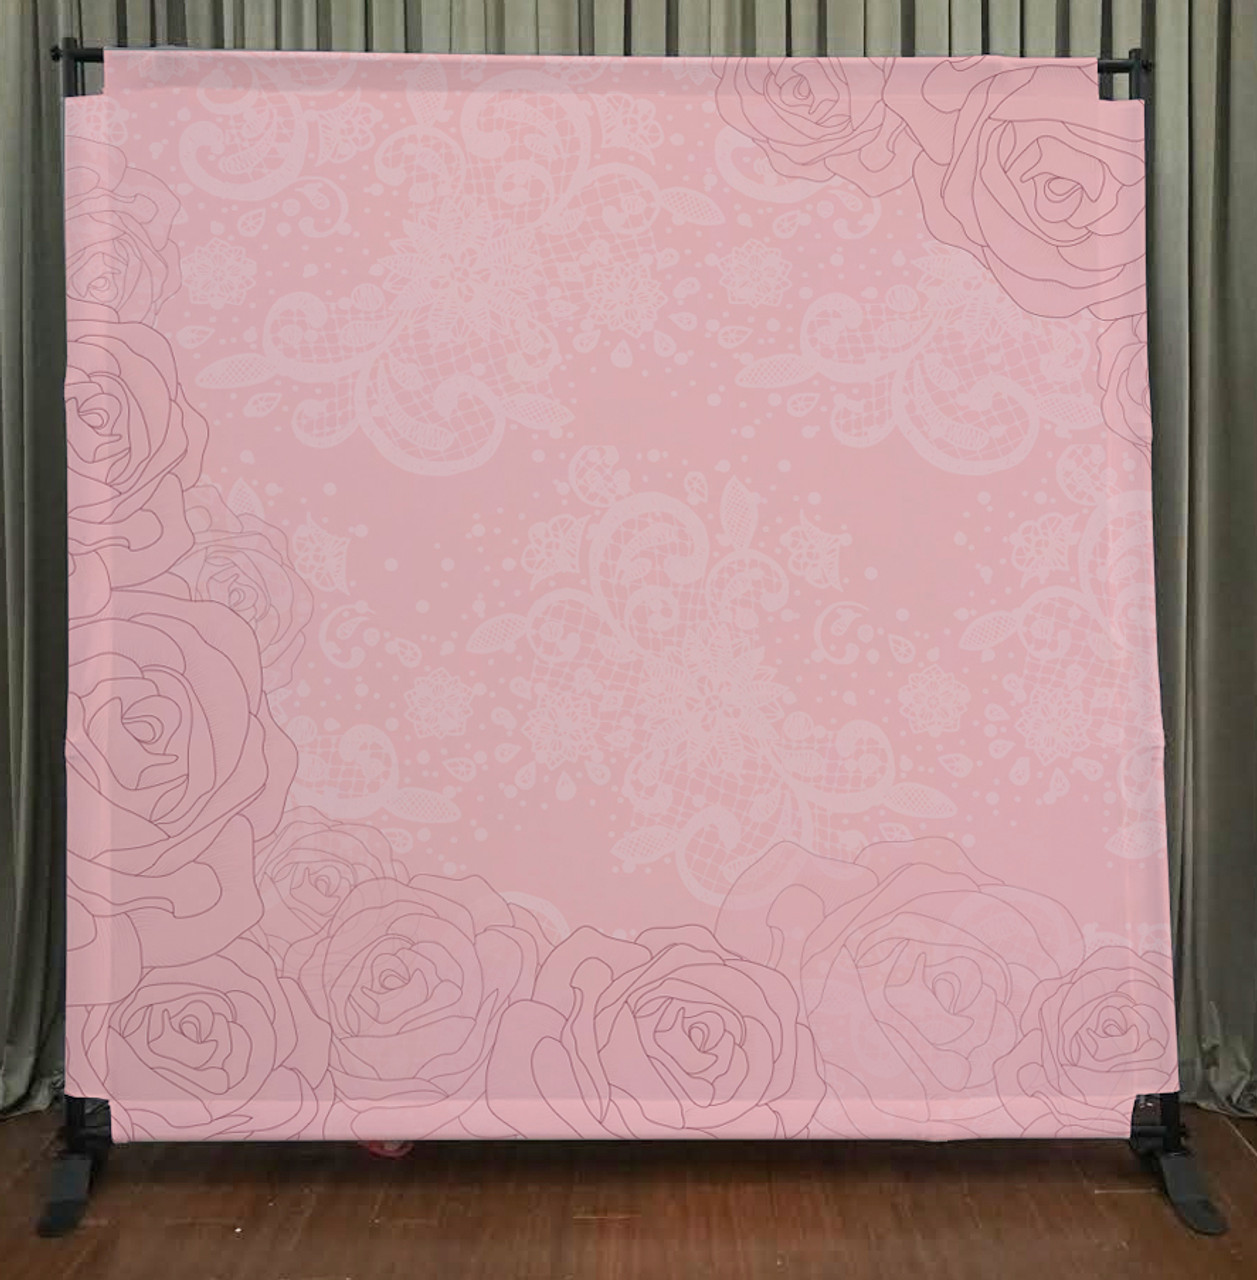 8x8 Printed Tension Fabric Backdrop Pink Lace Flowers Pb Backdrops